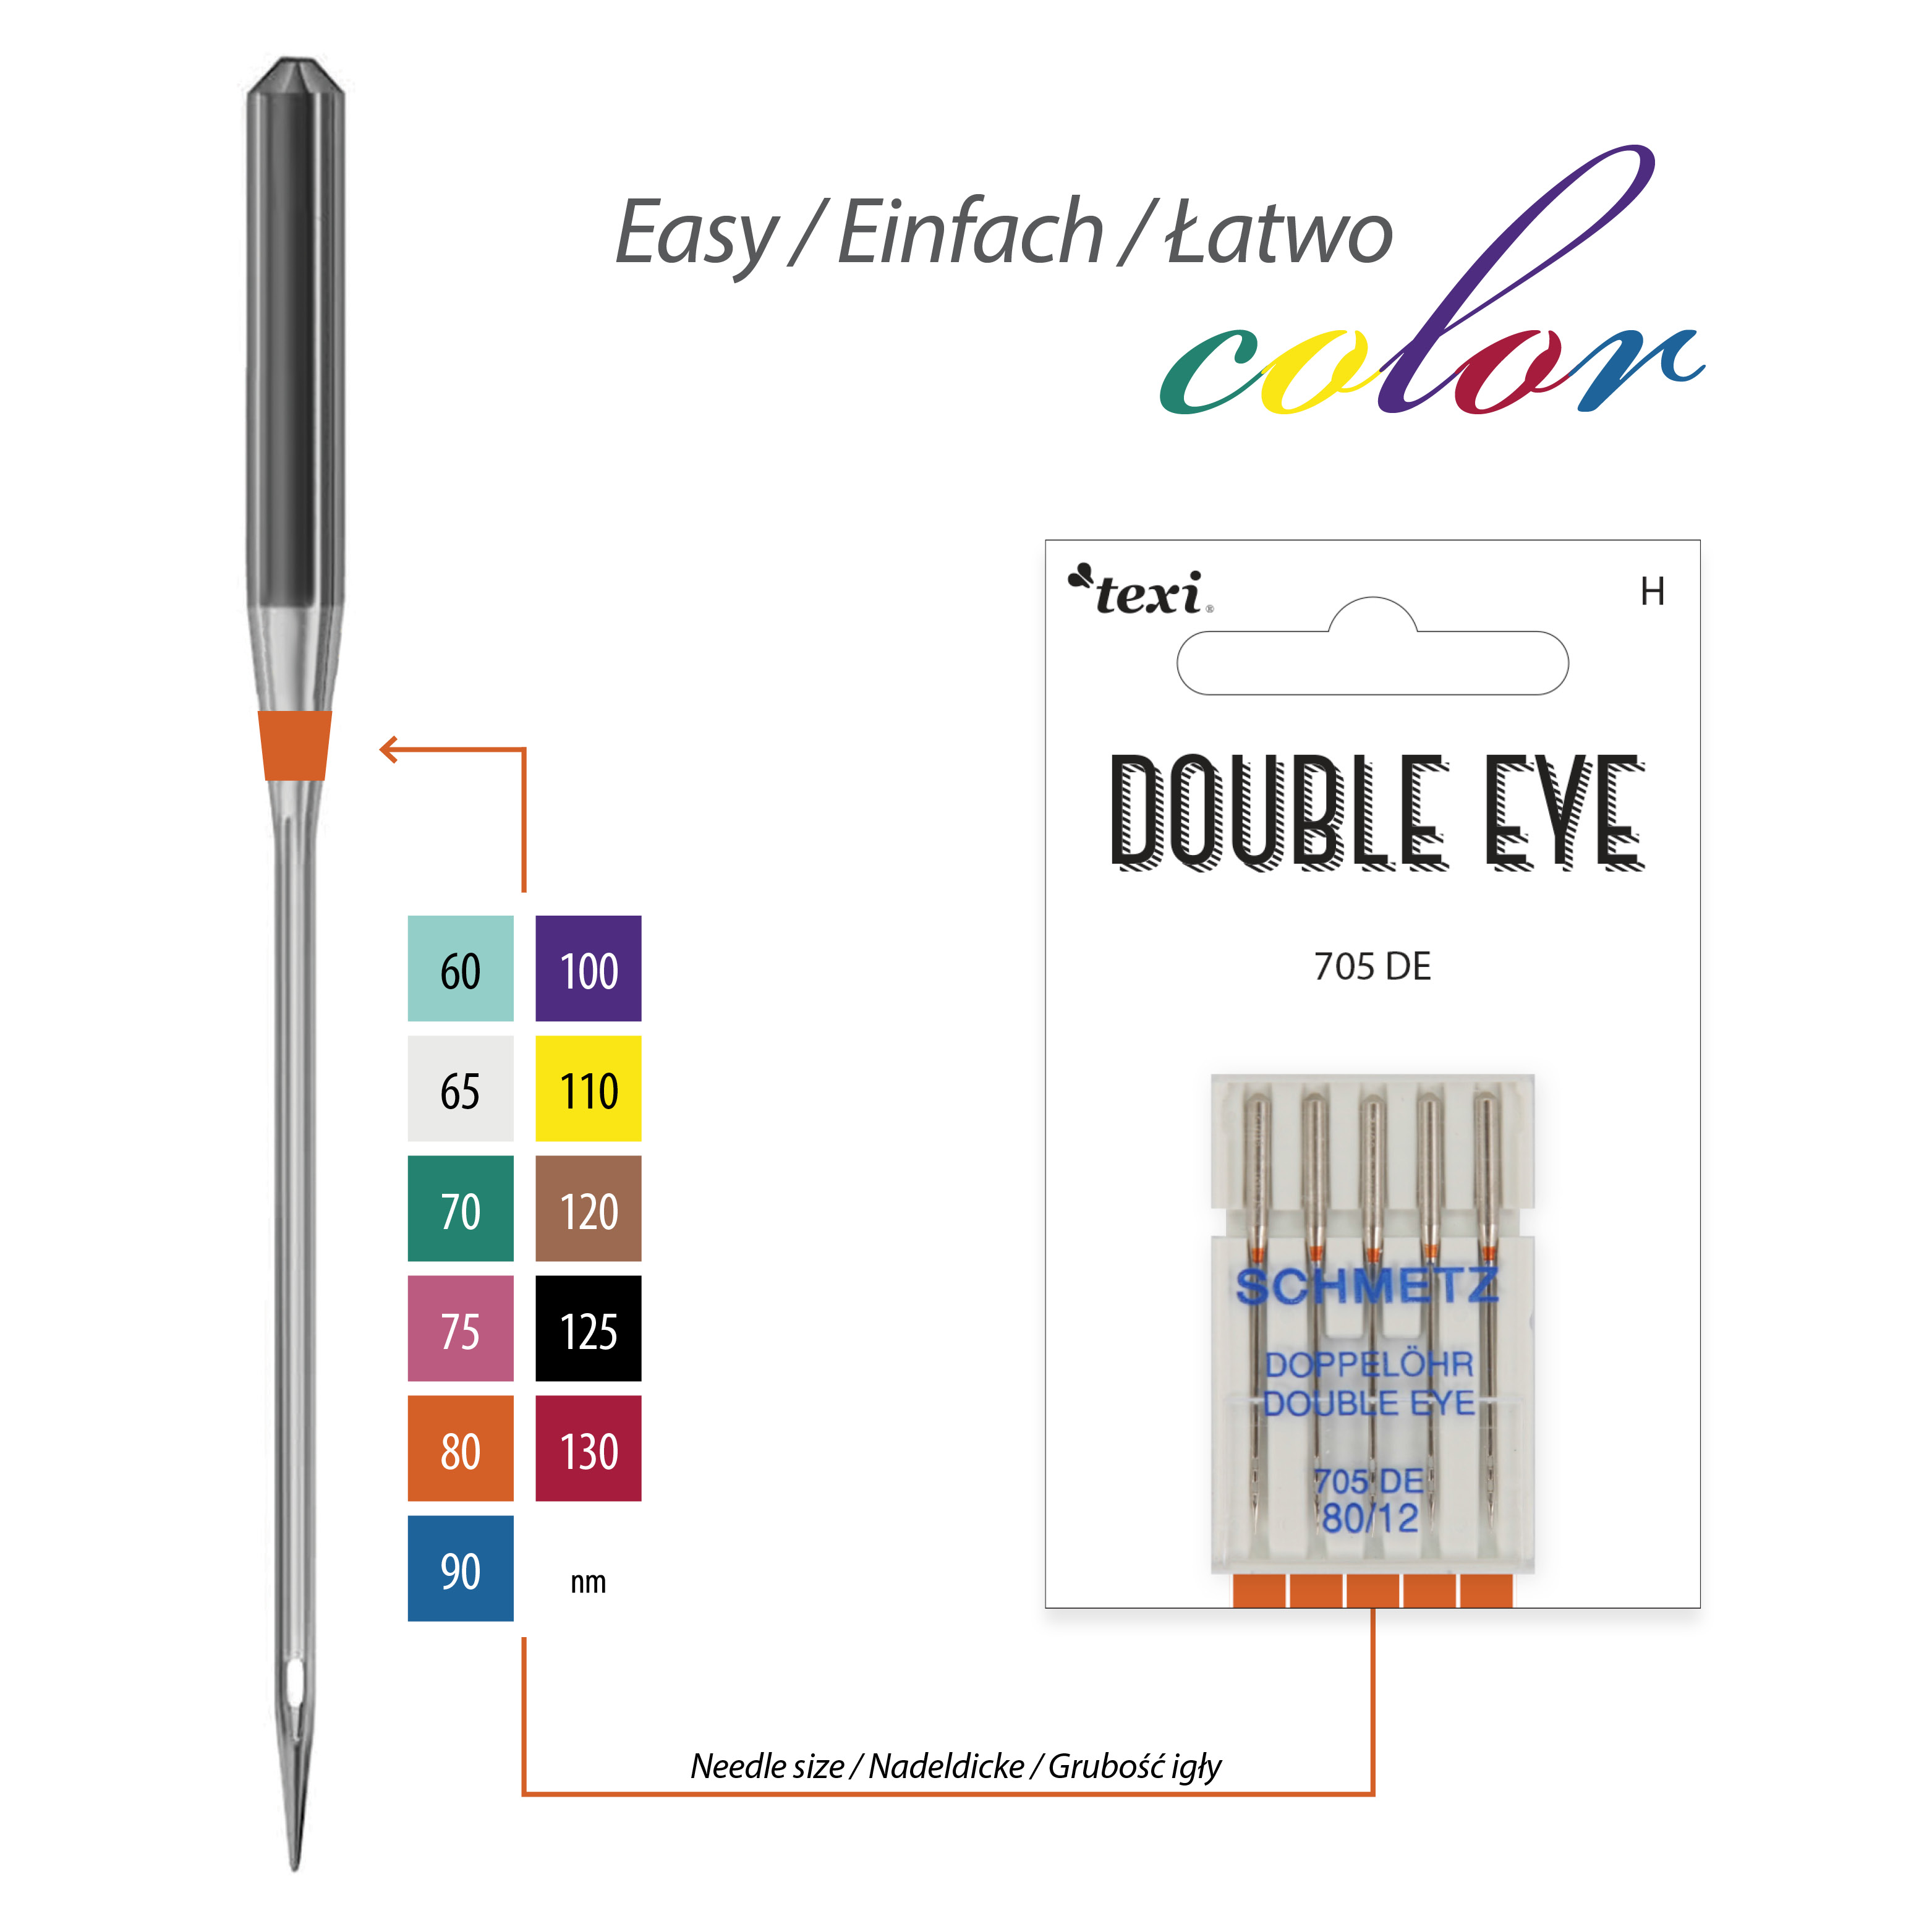 Double eye needles for household machines, 5 pcs, size 80